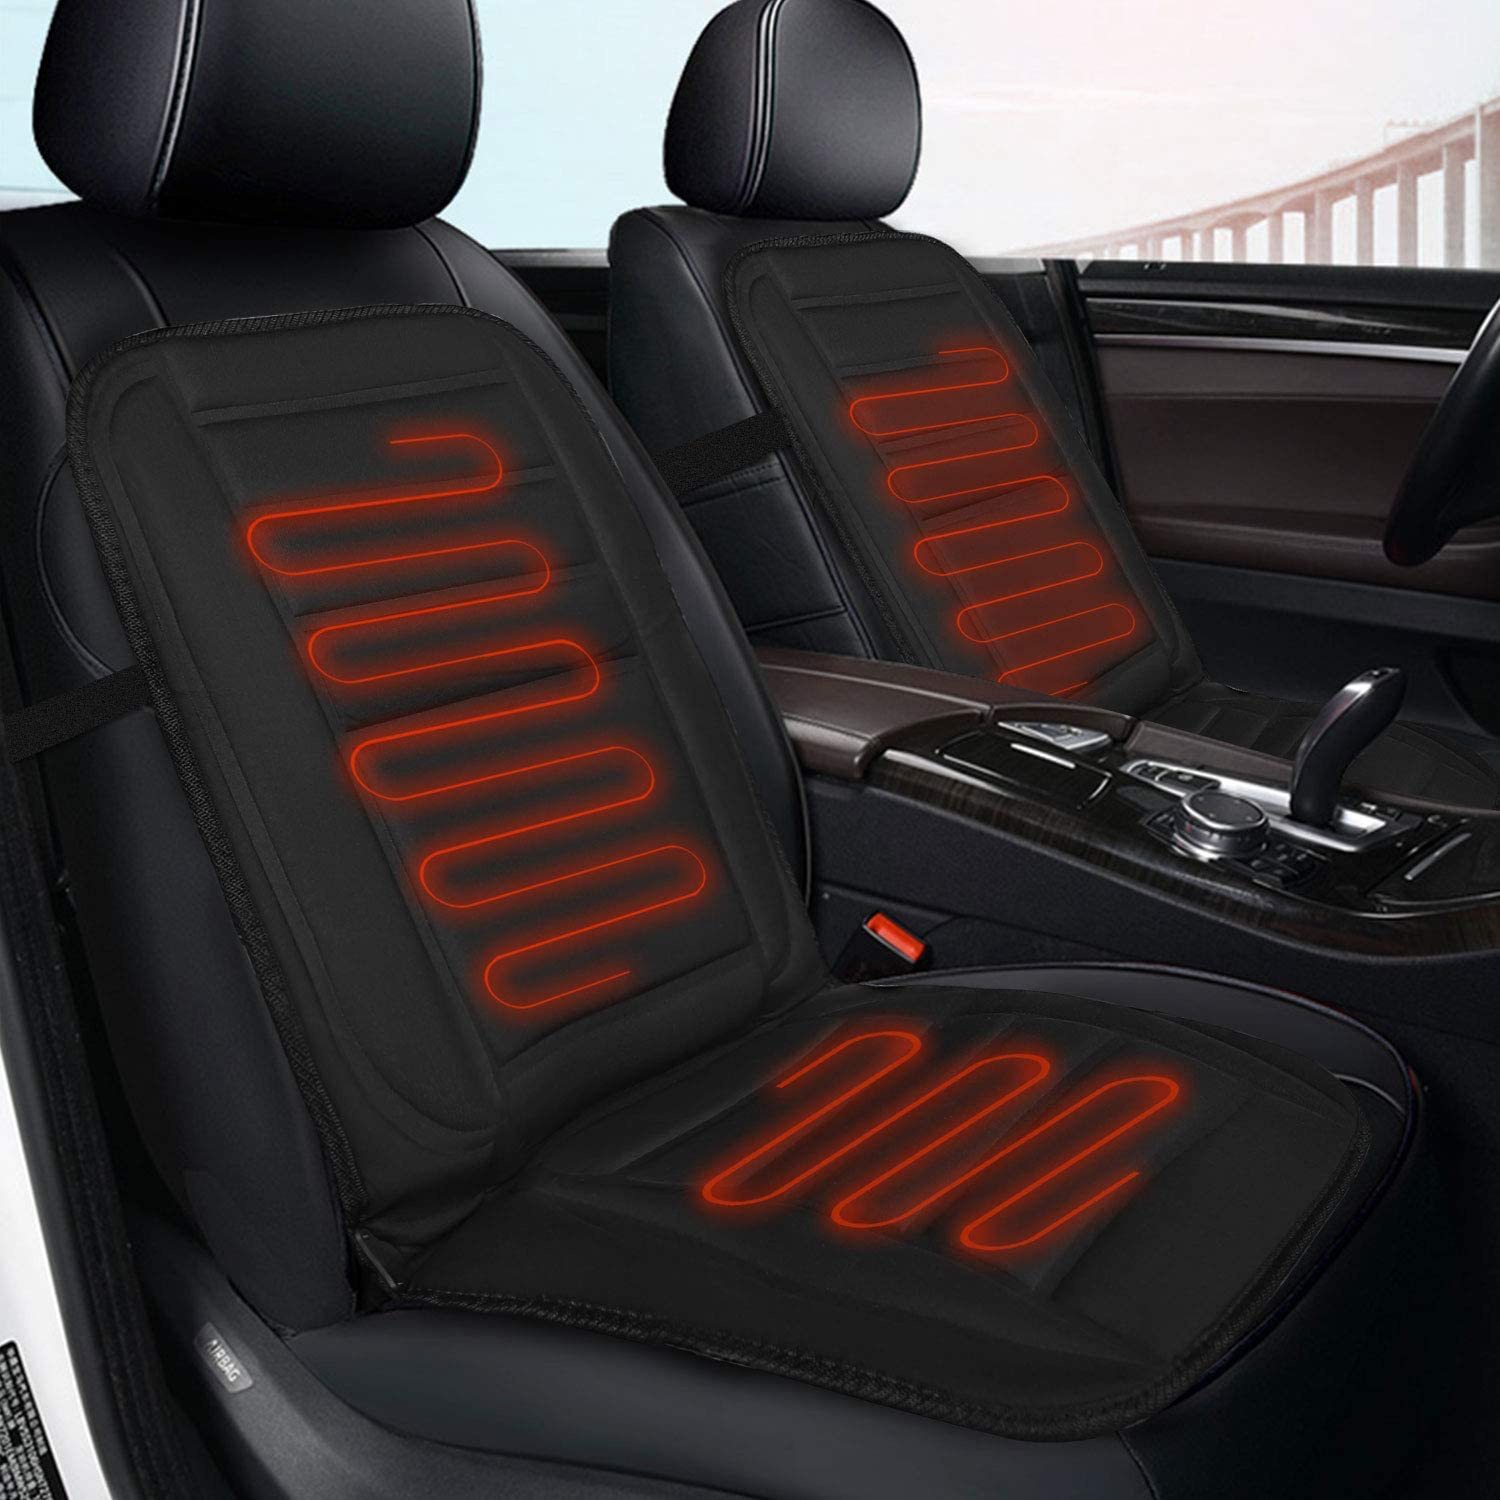 XUELI Heated Car Seat Cushion, Universal 12V Heated Multifunctional Car Seat Heater Fast Warming for Cold Weather Winter Driving Safer, Heated Seat Cover for Car/Truck/Home/Office Chair Use